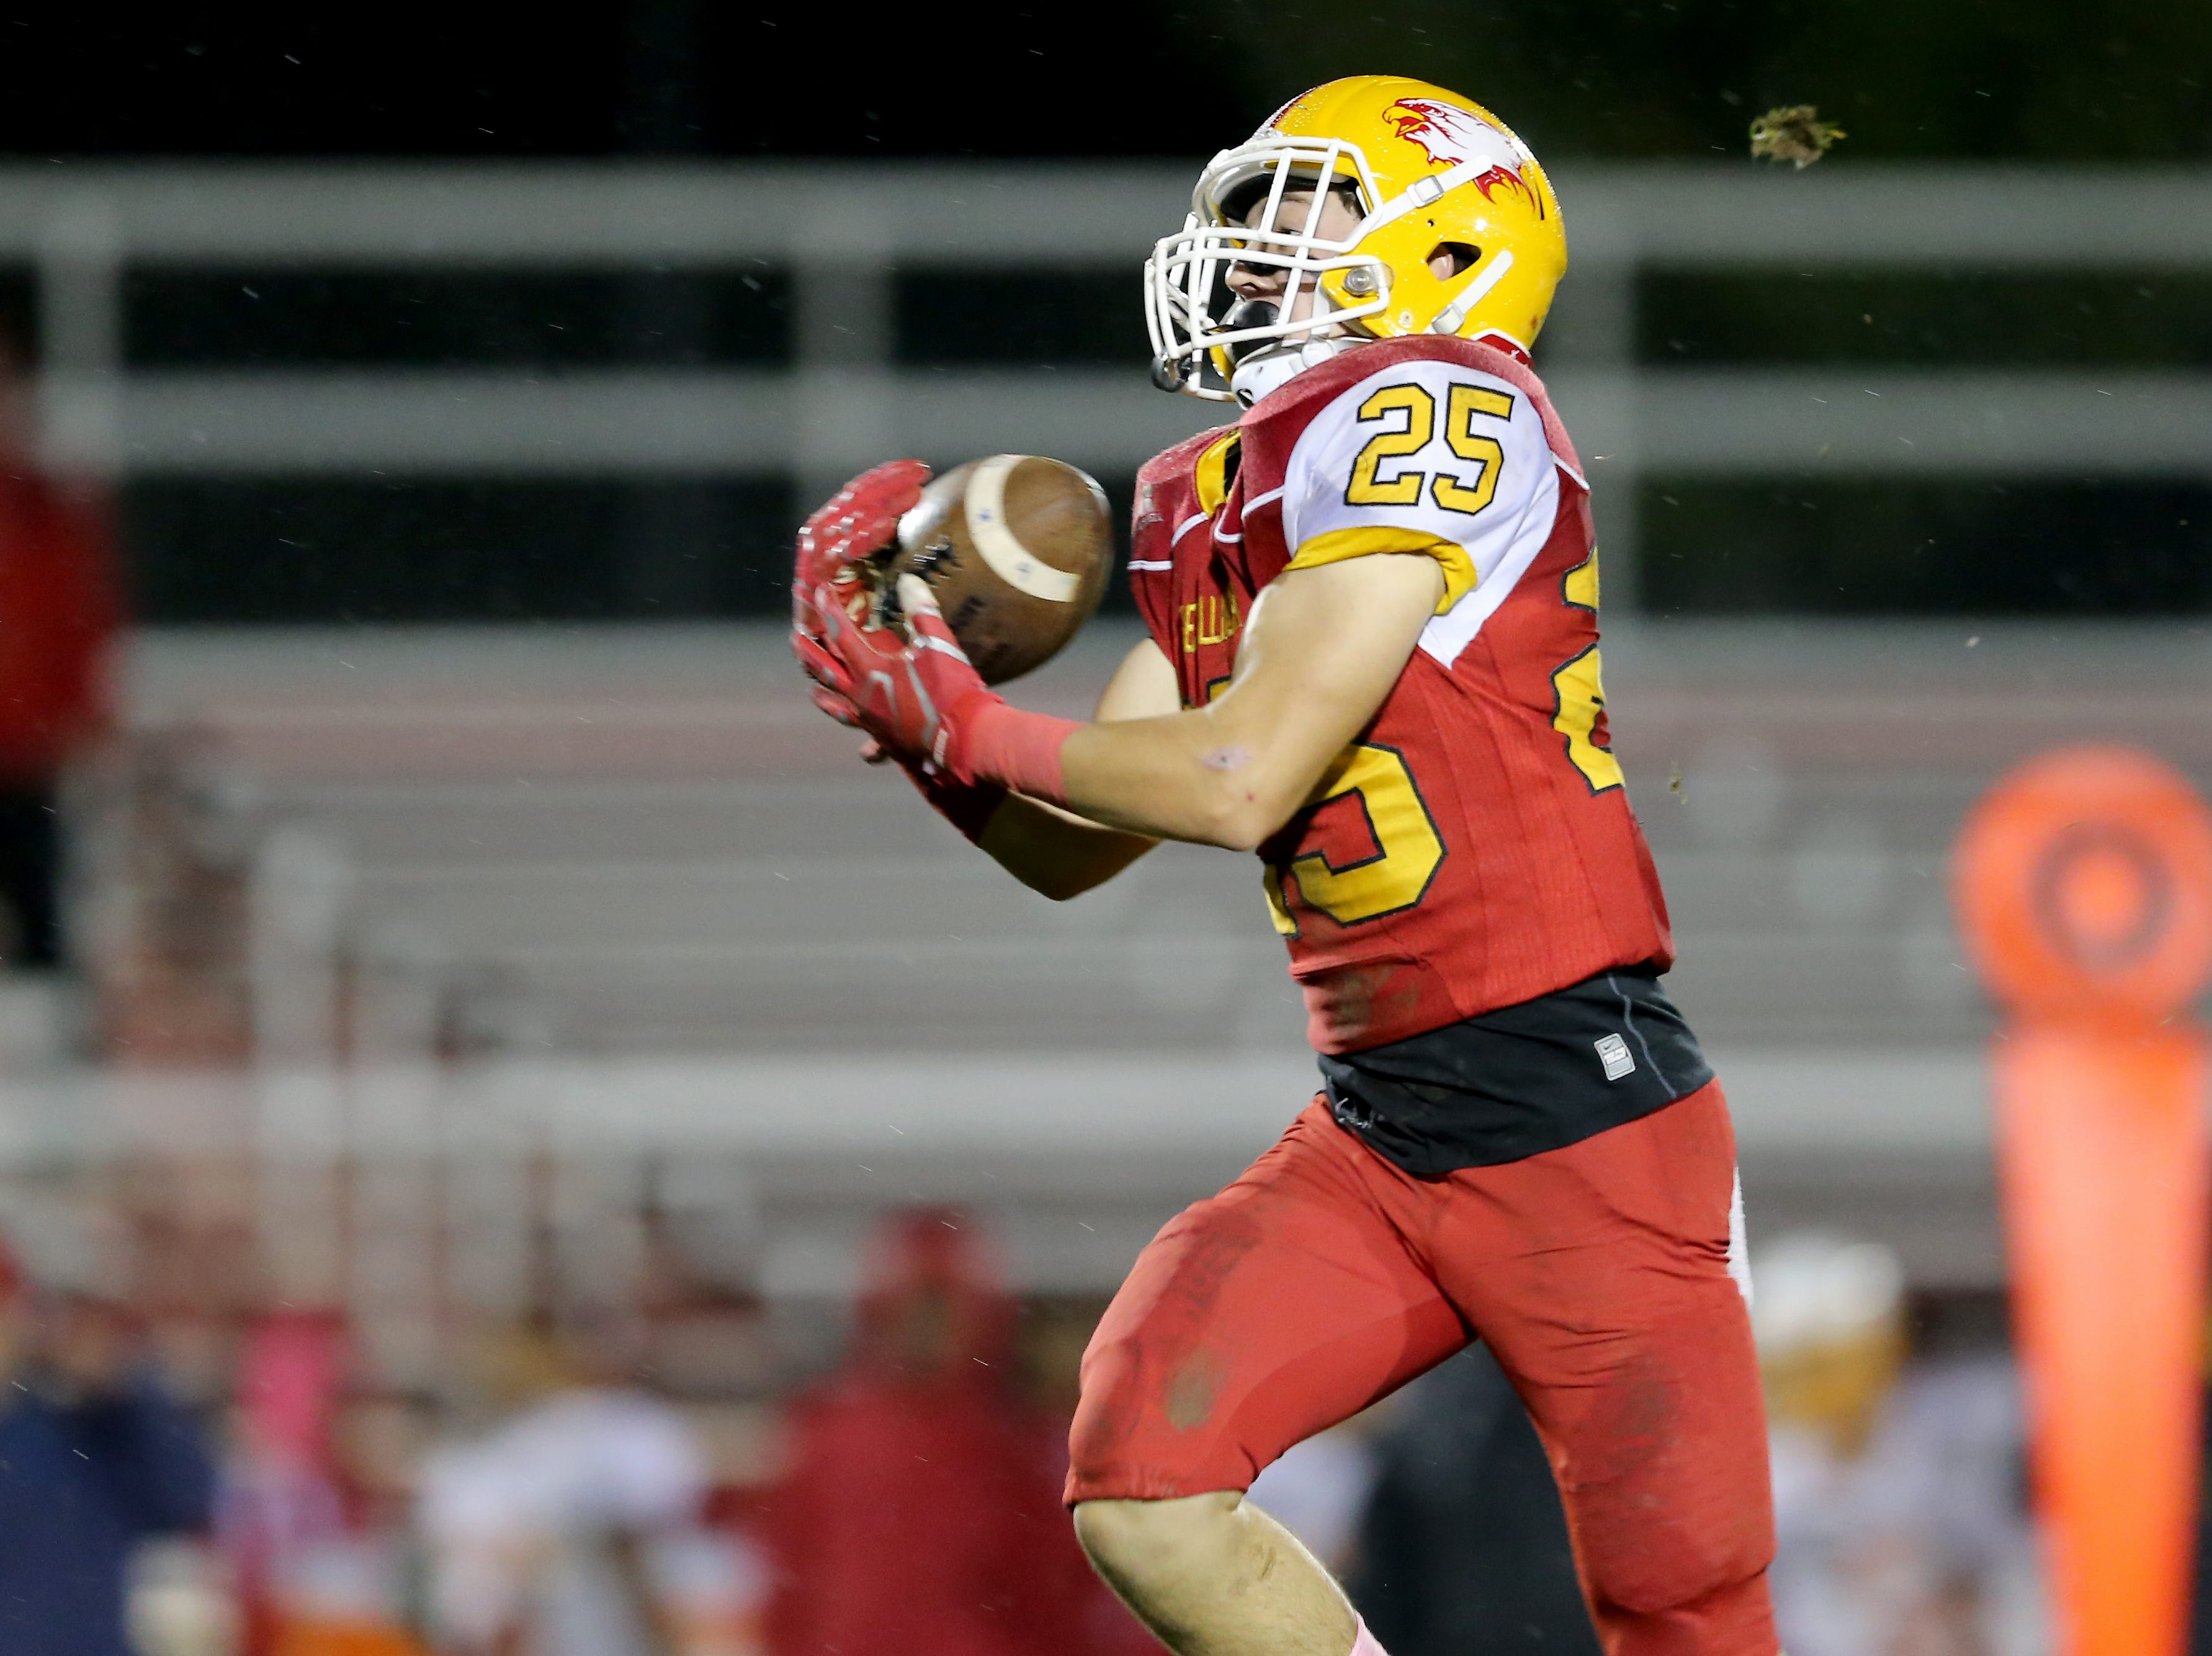 Bishop Fenwick wide receiver David Schu (25) catches a pass en route to a touchdown in the third quarter during a high school football game between Purcell Marian and Bishop Fenwick, Friday, Oct. 12, 2018, at Bishop Fenwick High School in Middletown, Ohio.